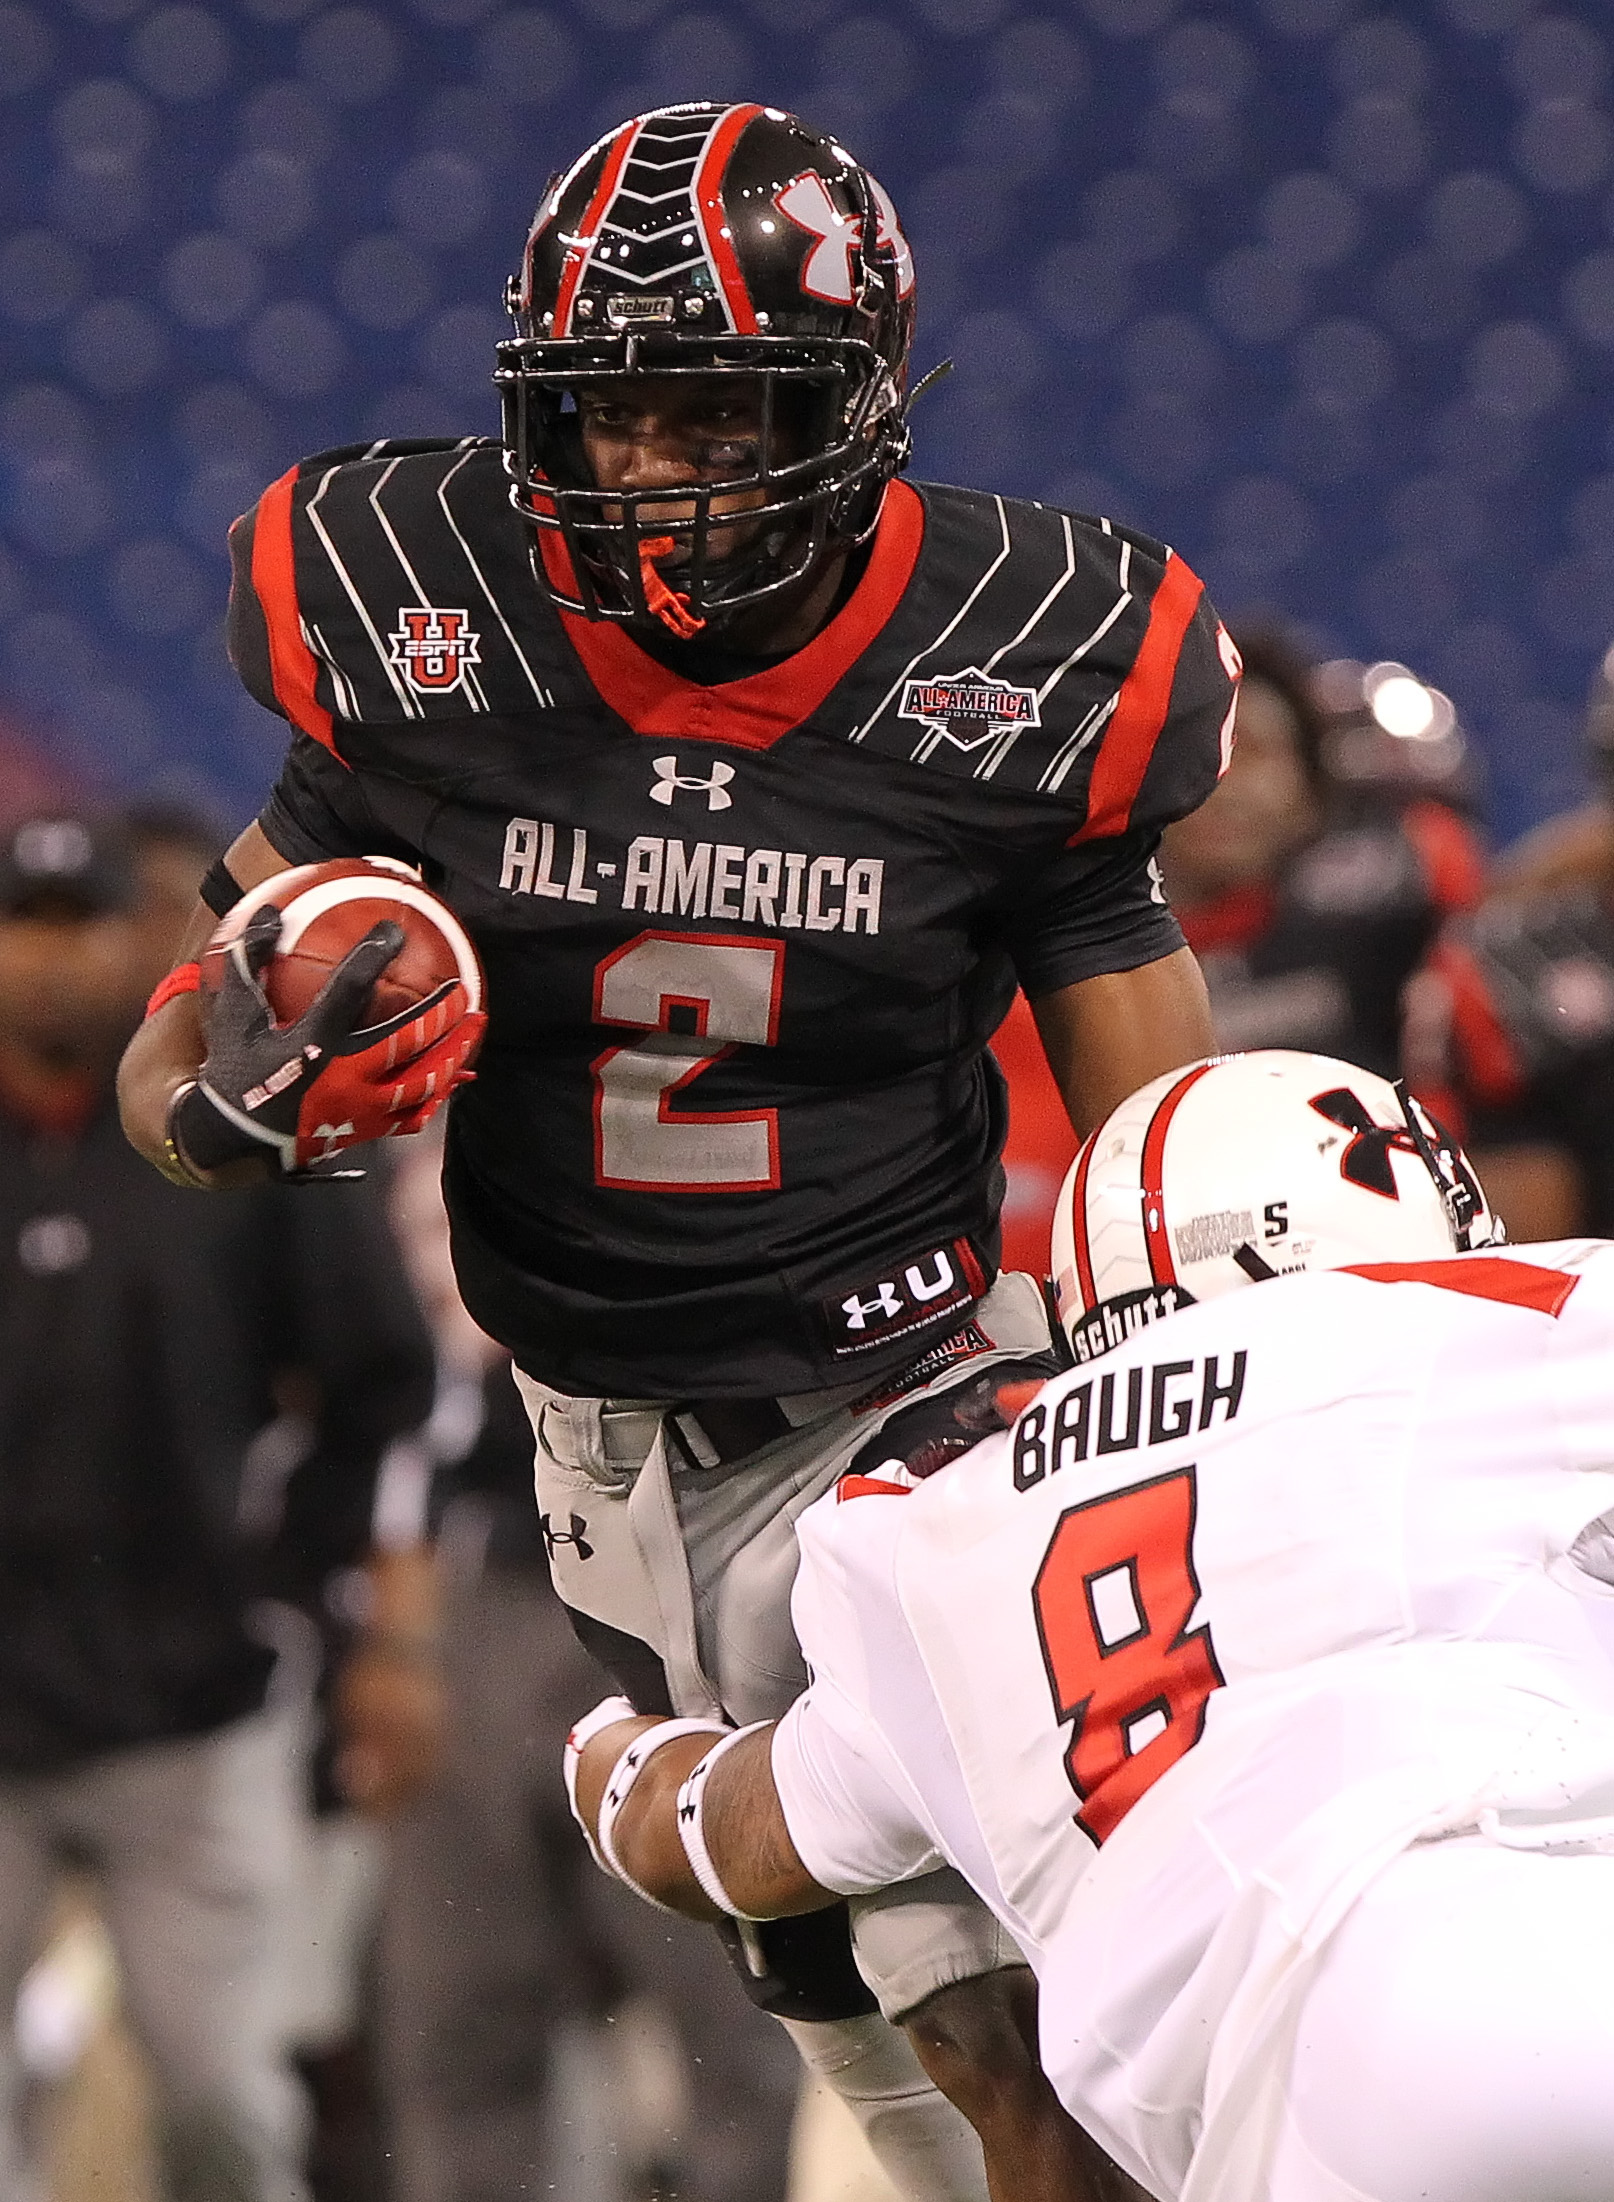 Freshman running back/receiver Dontre Wilson could make a quick impact at Ohio State. (USA Today Sports)